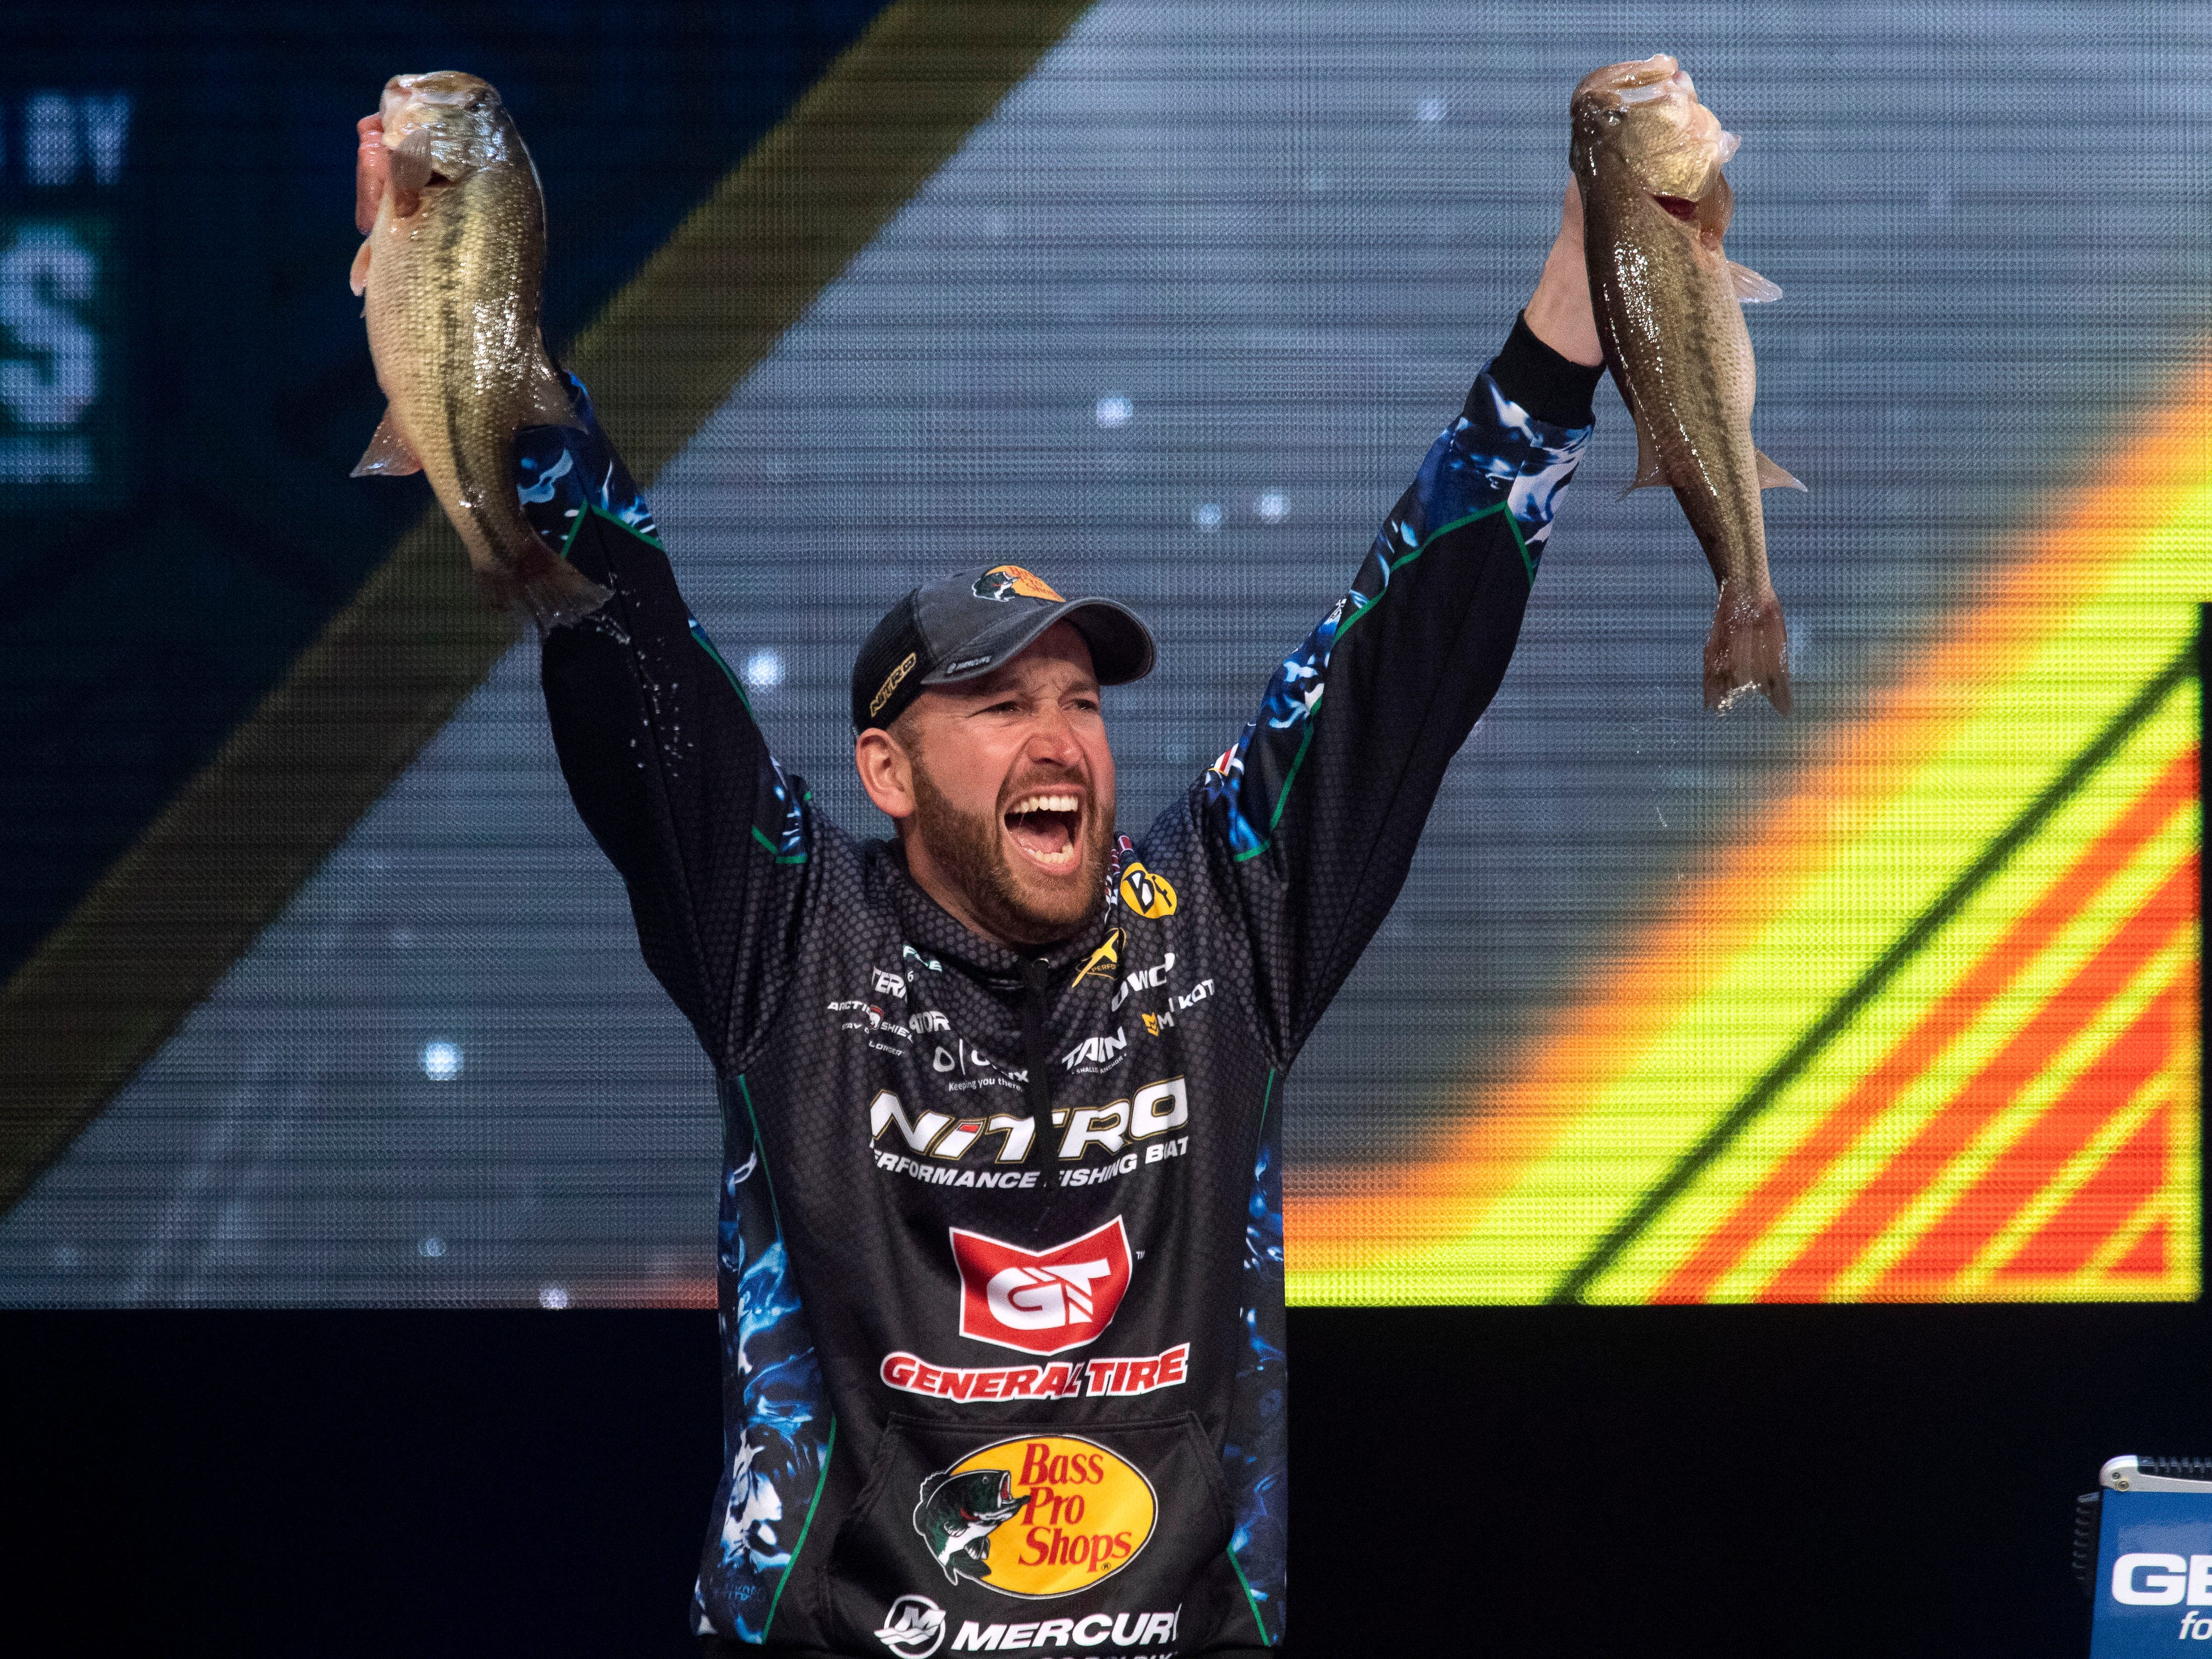 Knoxville's Ott DeFoe shows off his two best in the day's catch to win the 2019 Bassmaster Classic on Sunday, March 17, 2019 during the weigh-in at Thompson-Boling Arena. DeFoe won with a total of 49 lbs and 3 oz. of bass fish over the three day tournament.